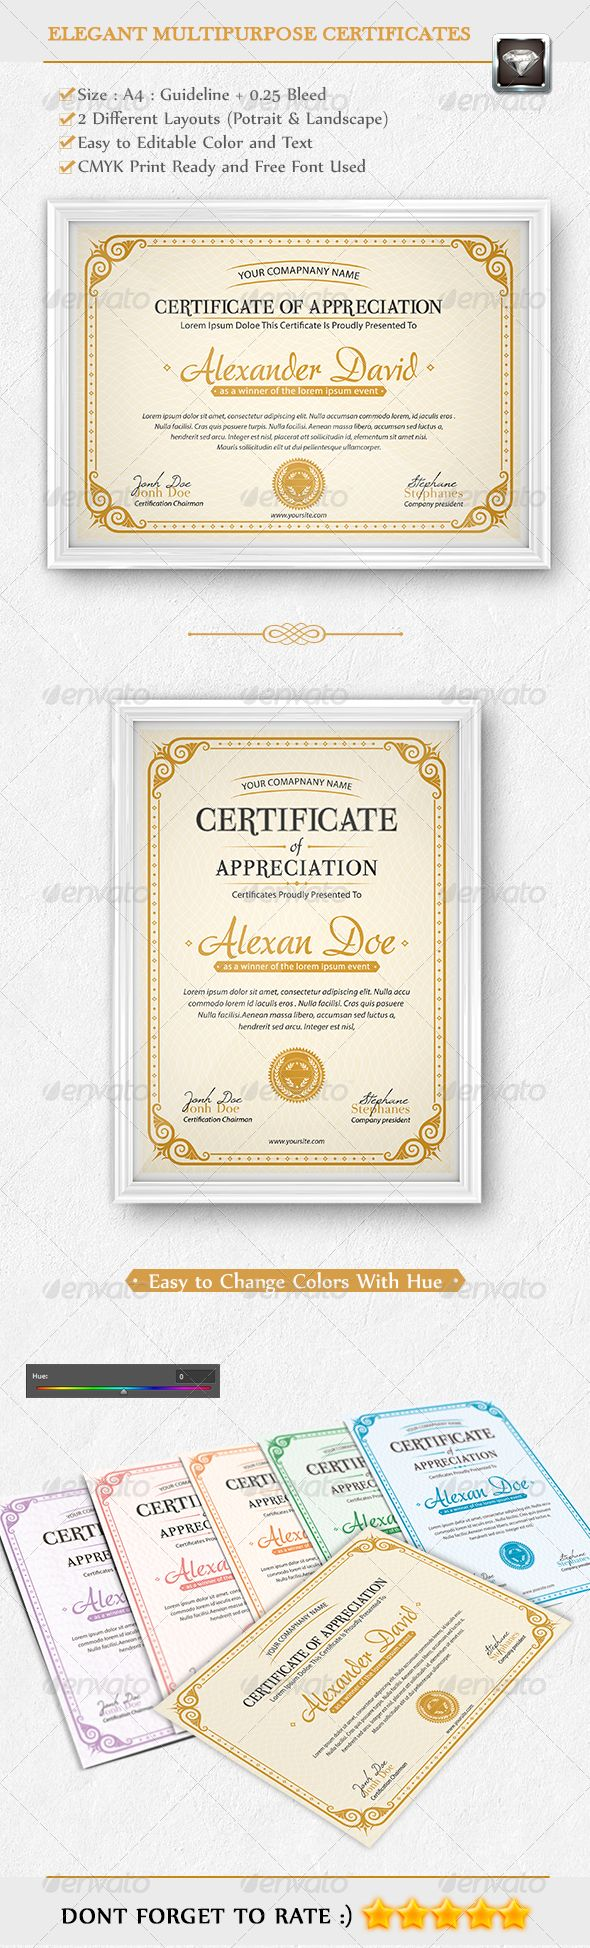 Elegant Multipurpose Certificates #certificate #template When I don't have time to create my own templates, I support other artist. This one is very well done! Support your fellow artist!